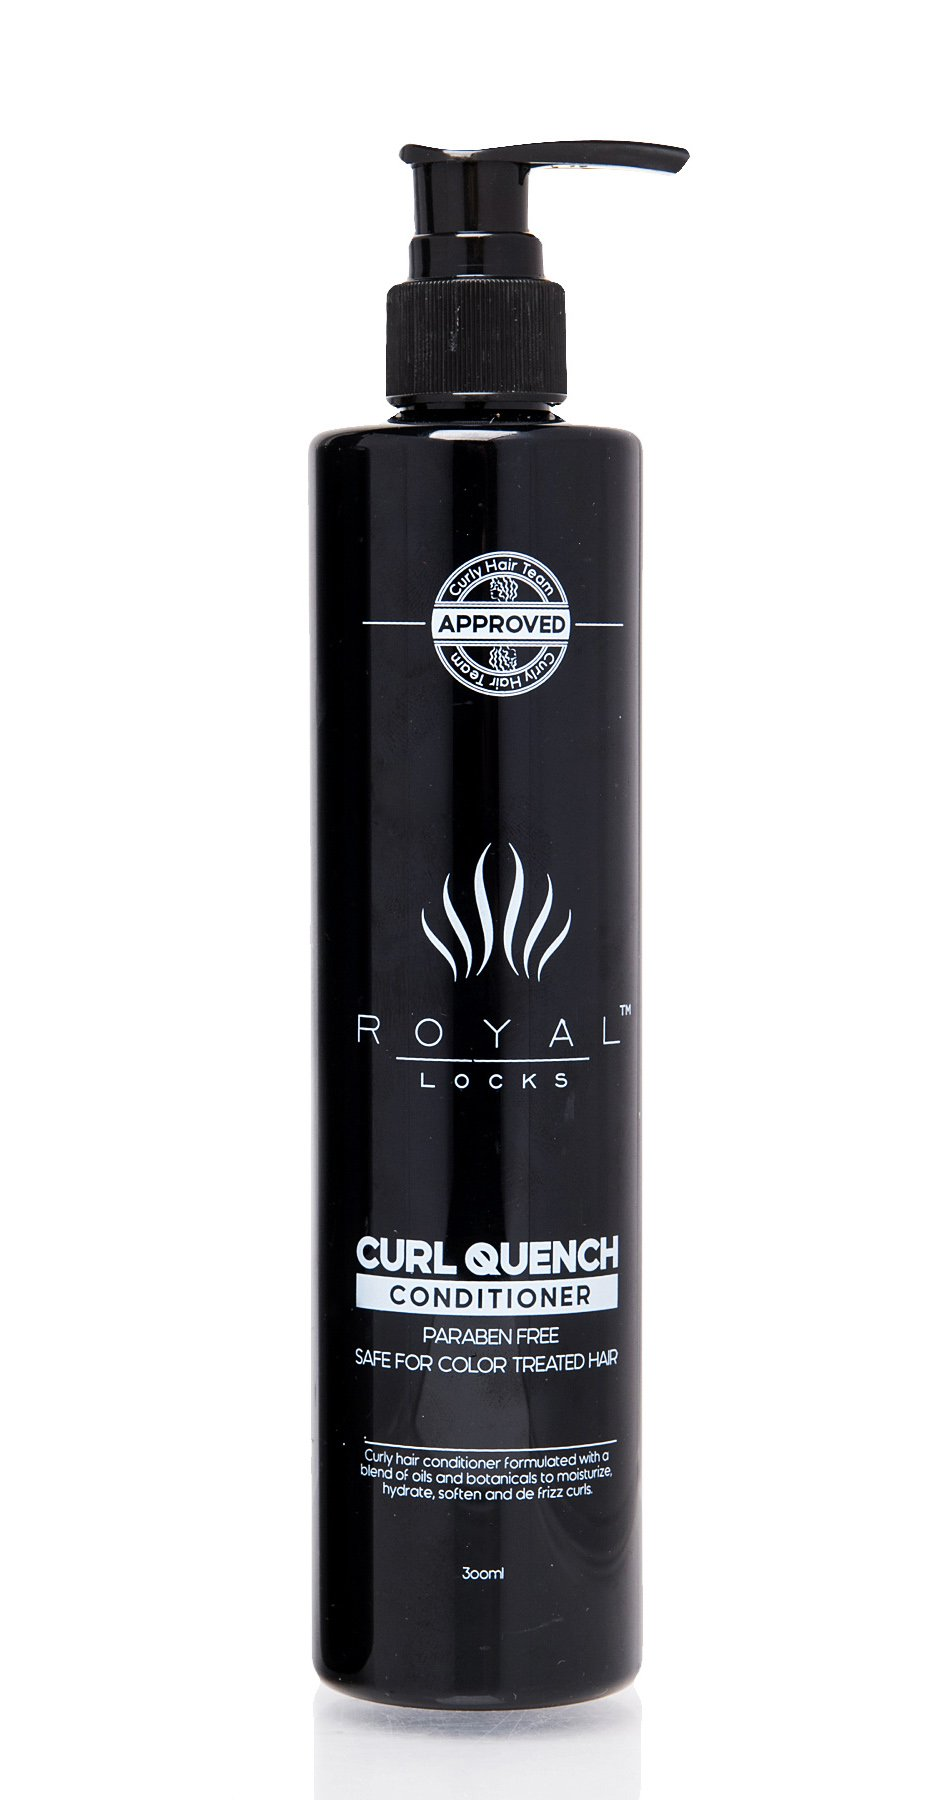 Curl Quench Conditioner by Royal Locks. Argan Oil and Keratin Infused . Sulfate and Paraben Free for Curly , Colored , Permed , Dry , Grey or Damaged Hair